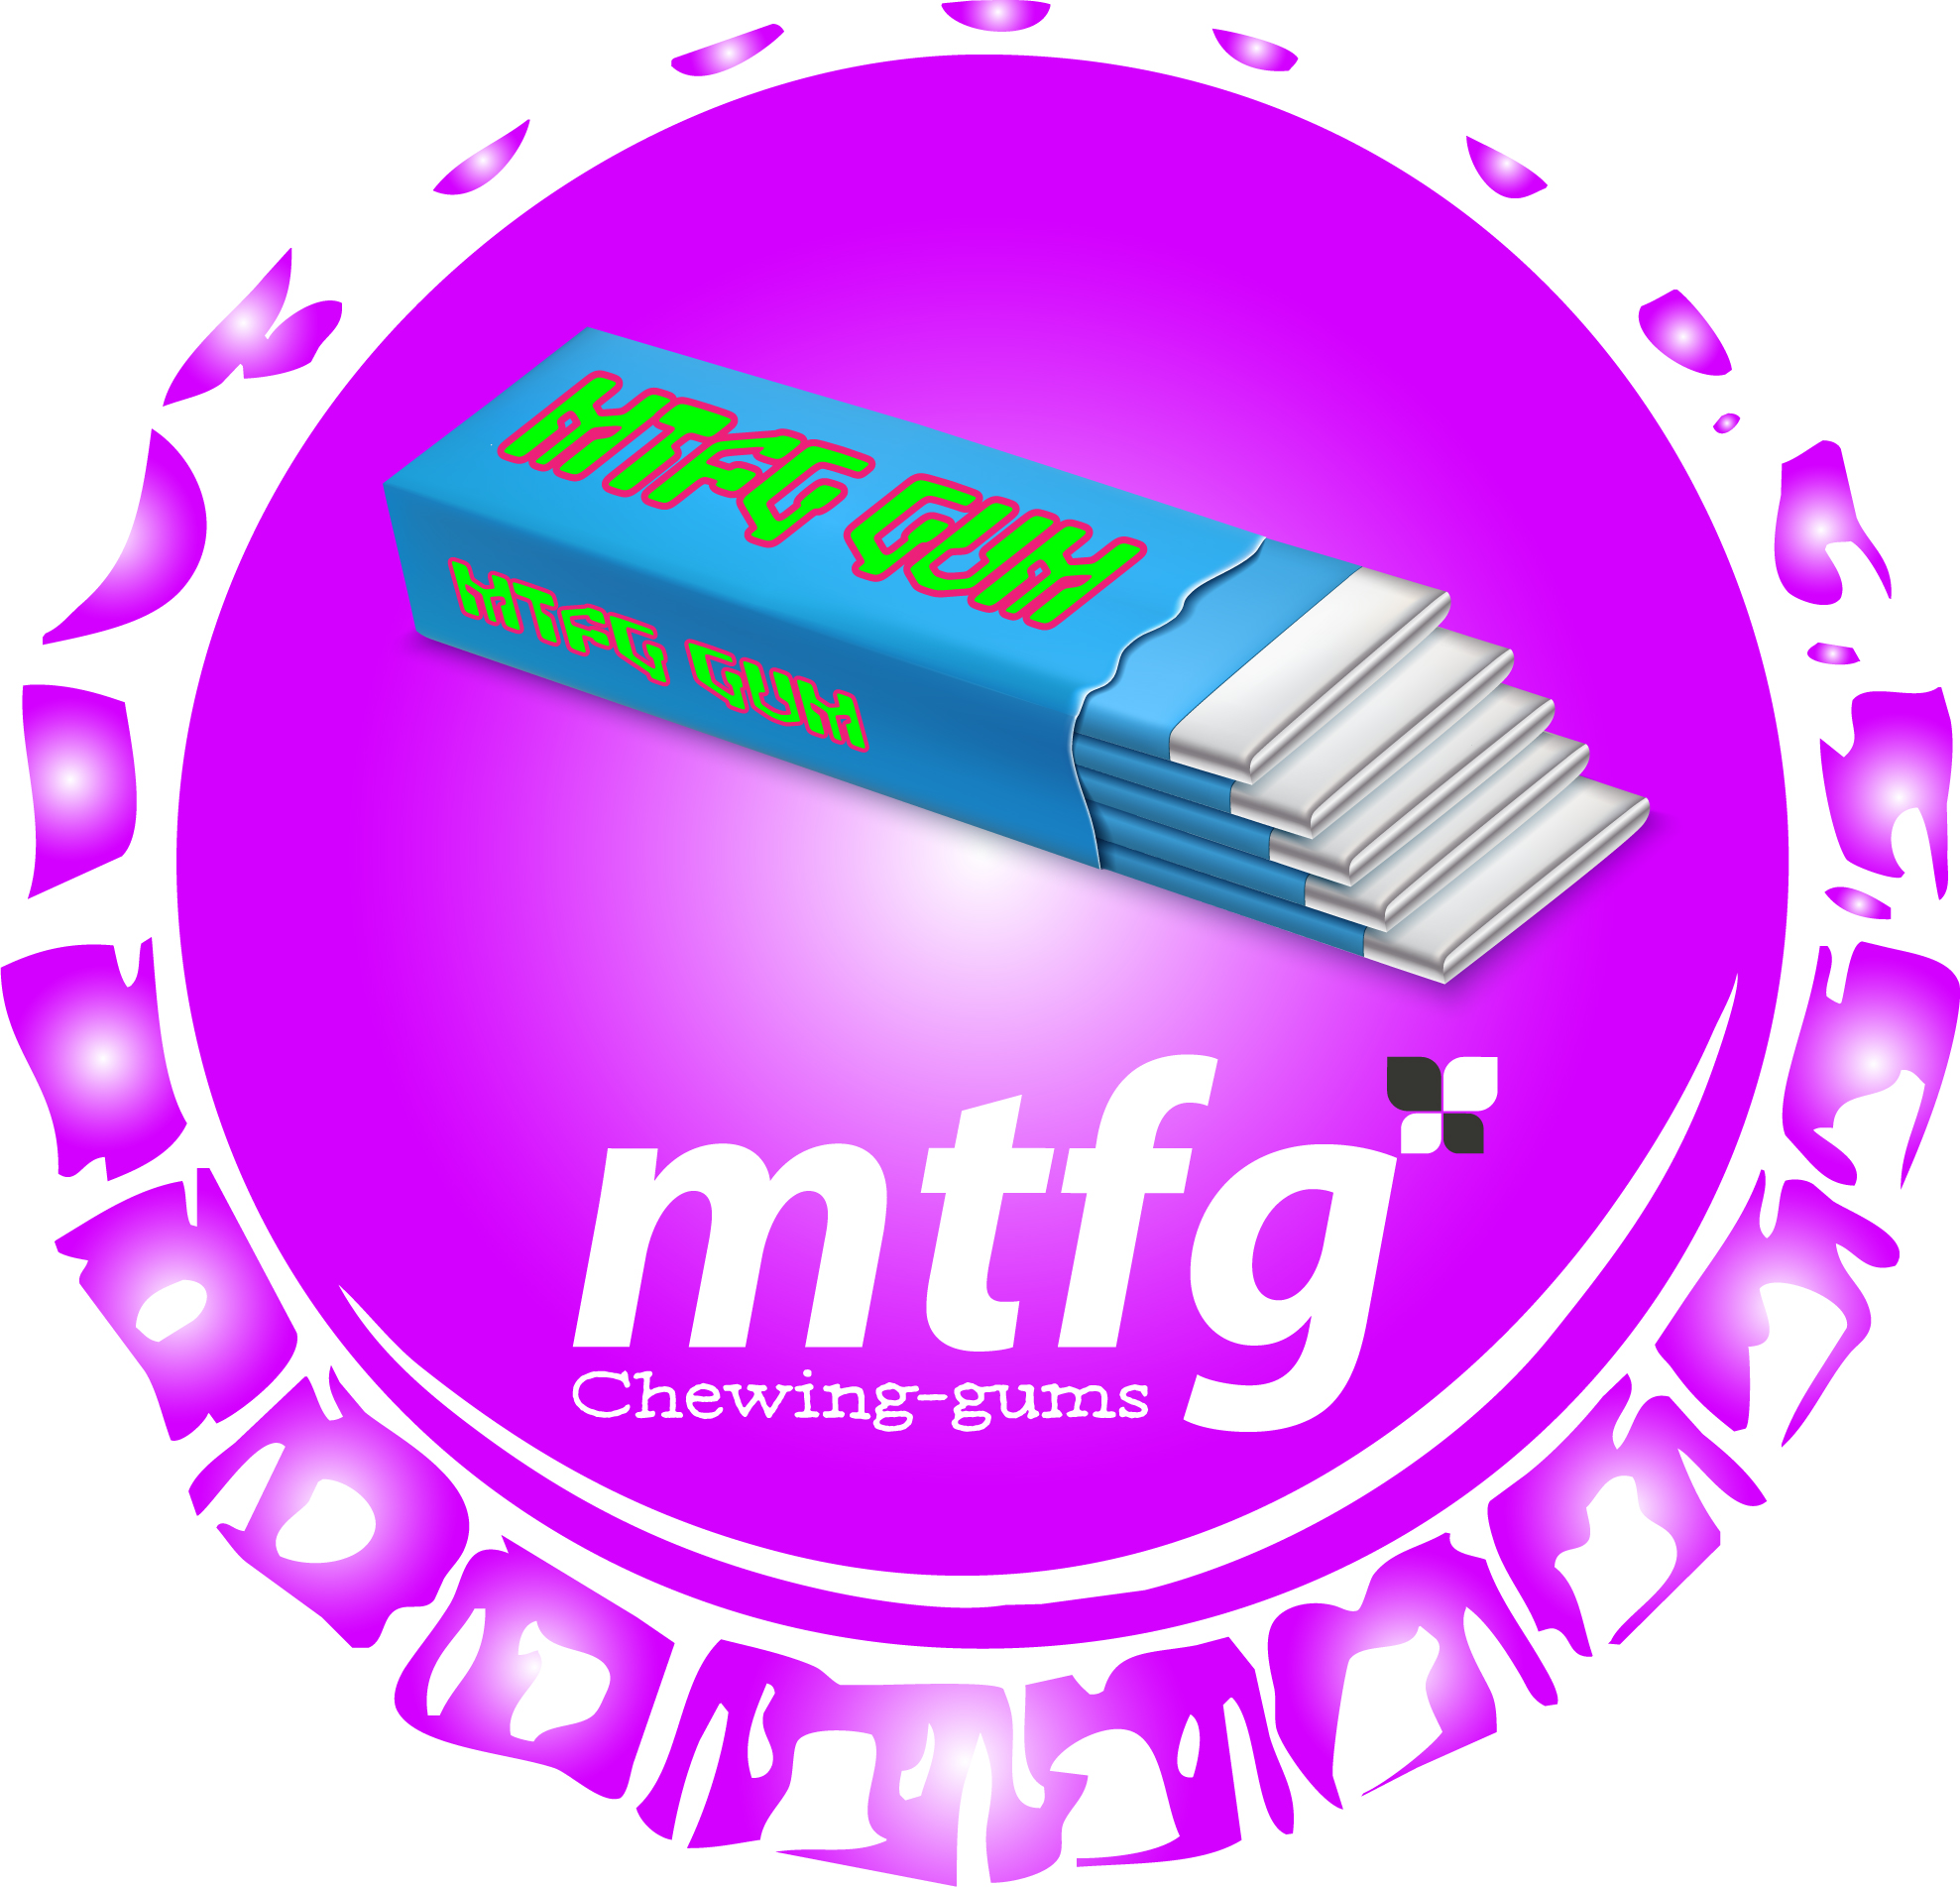 MTFG Chewing-gums